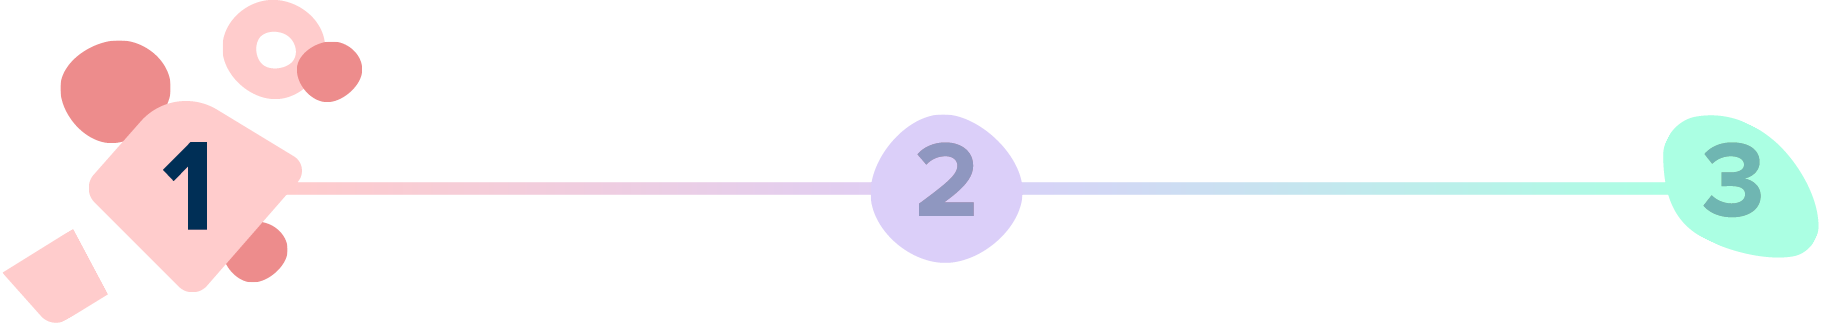 A line with numbers 1, 2, 3. Number 1 is larger with pink shapes around it.